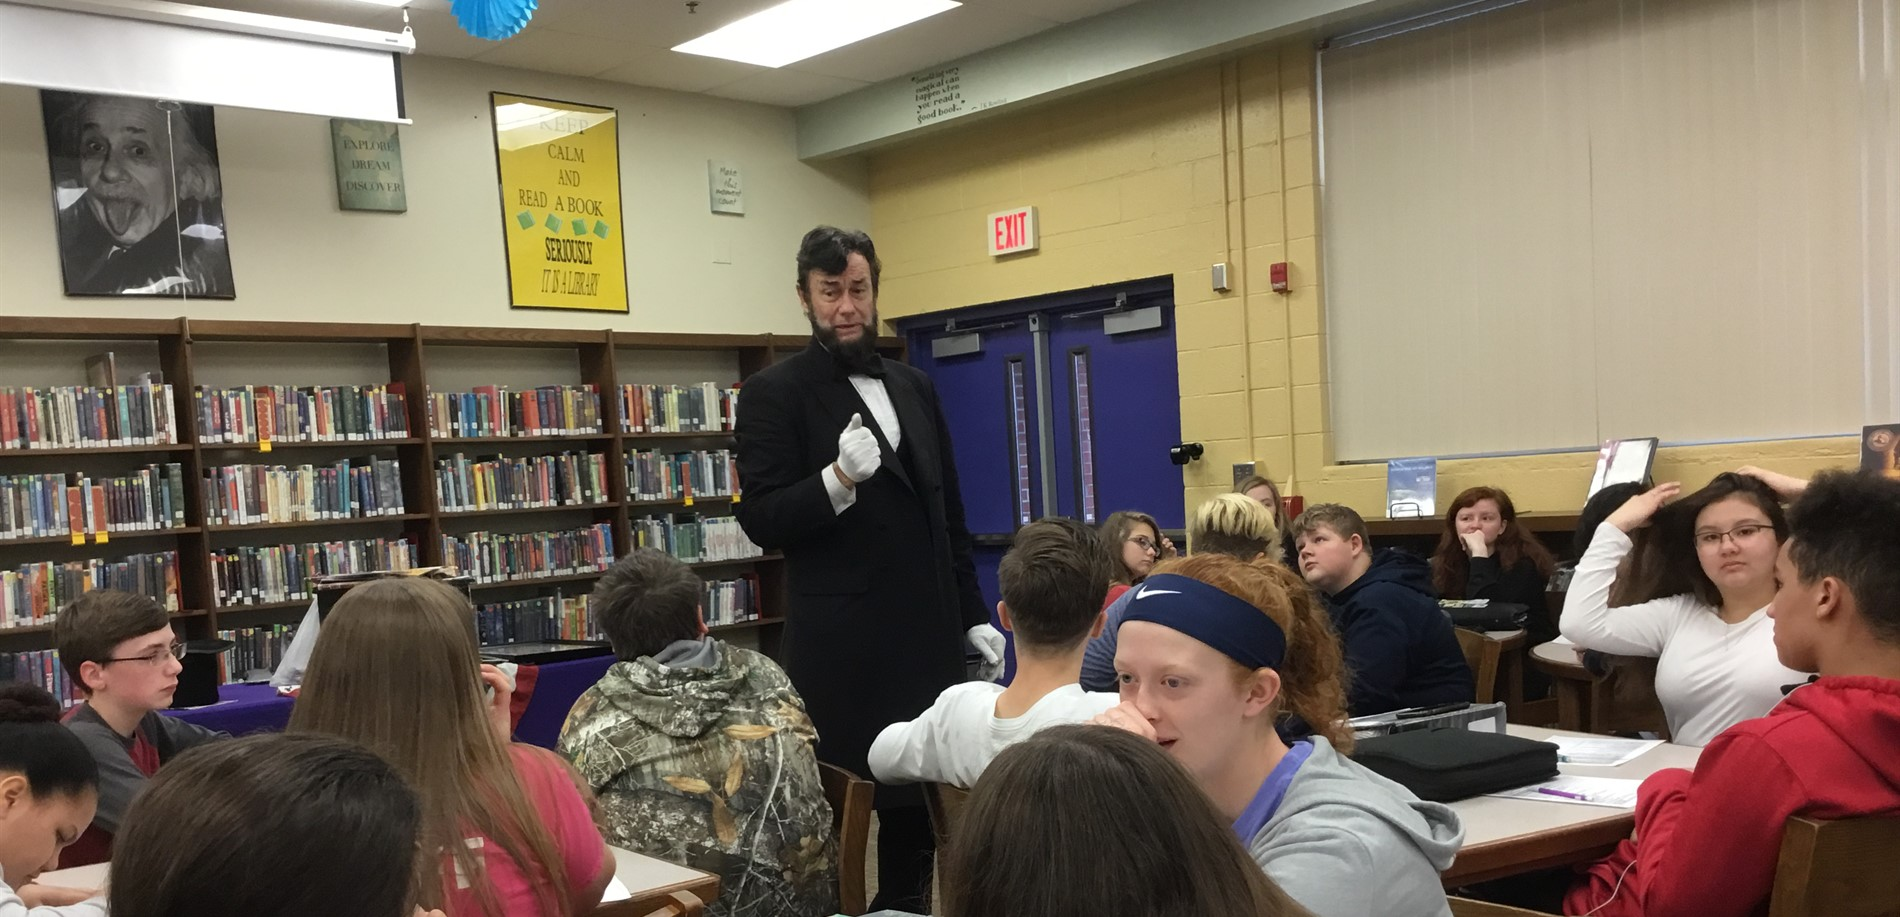 Abraham Lincoln Re-enactor, Larry Elliott, Shares Civil War History with WHMS 8th Graders.